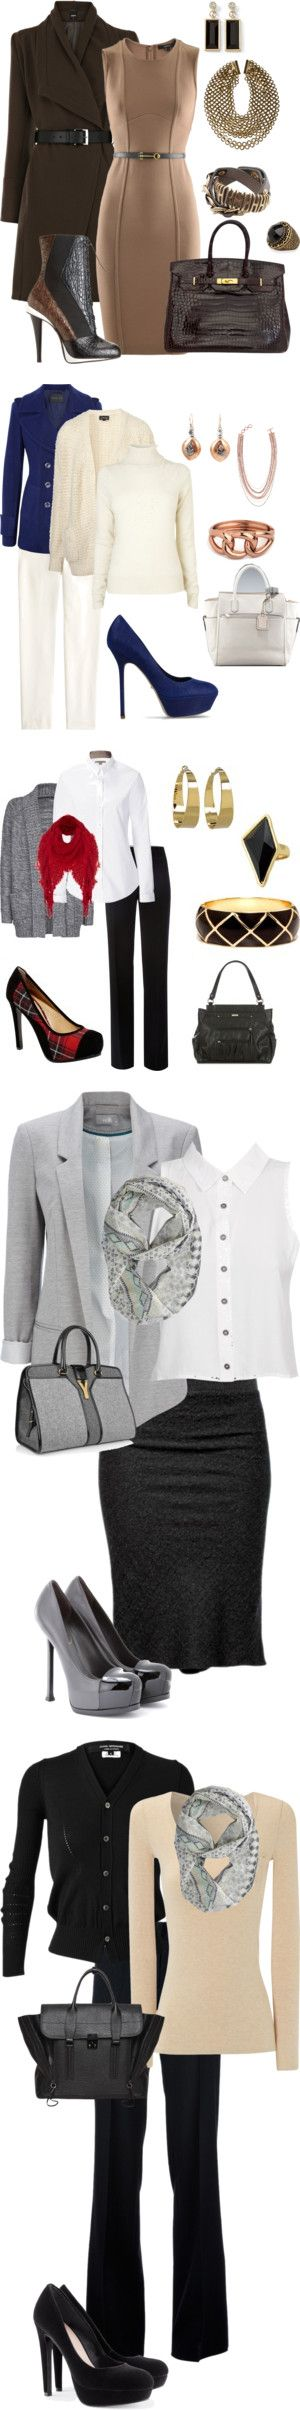 """Work Outfits"" by mickie-tucker on Polyvore"